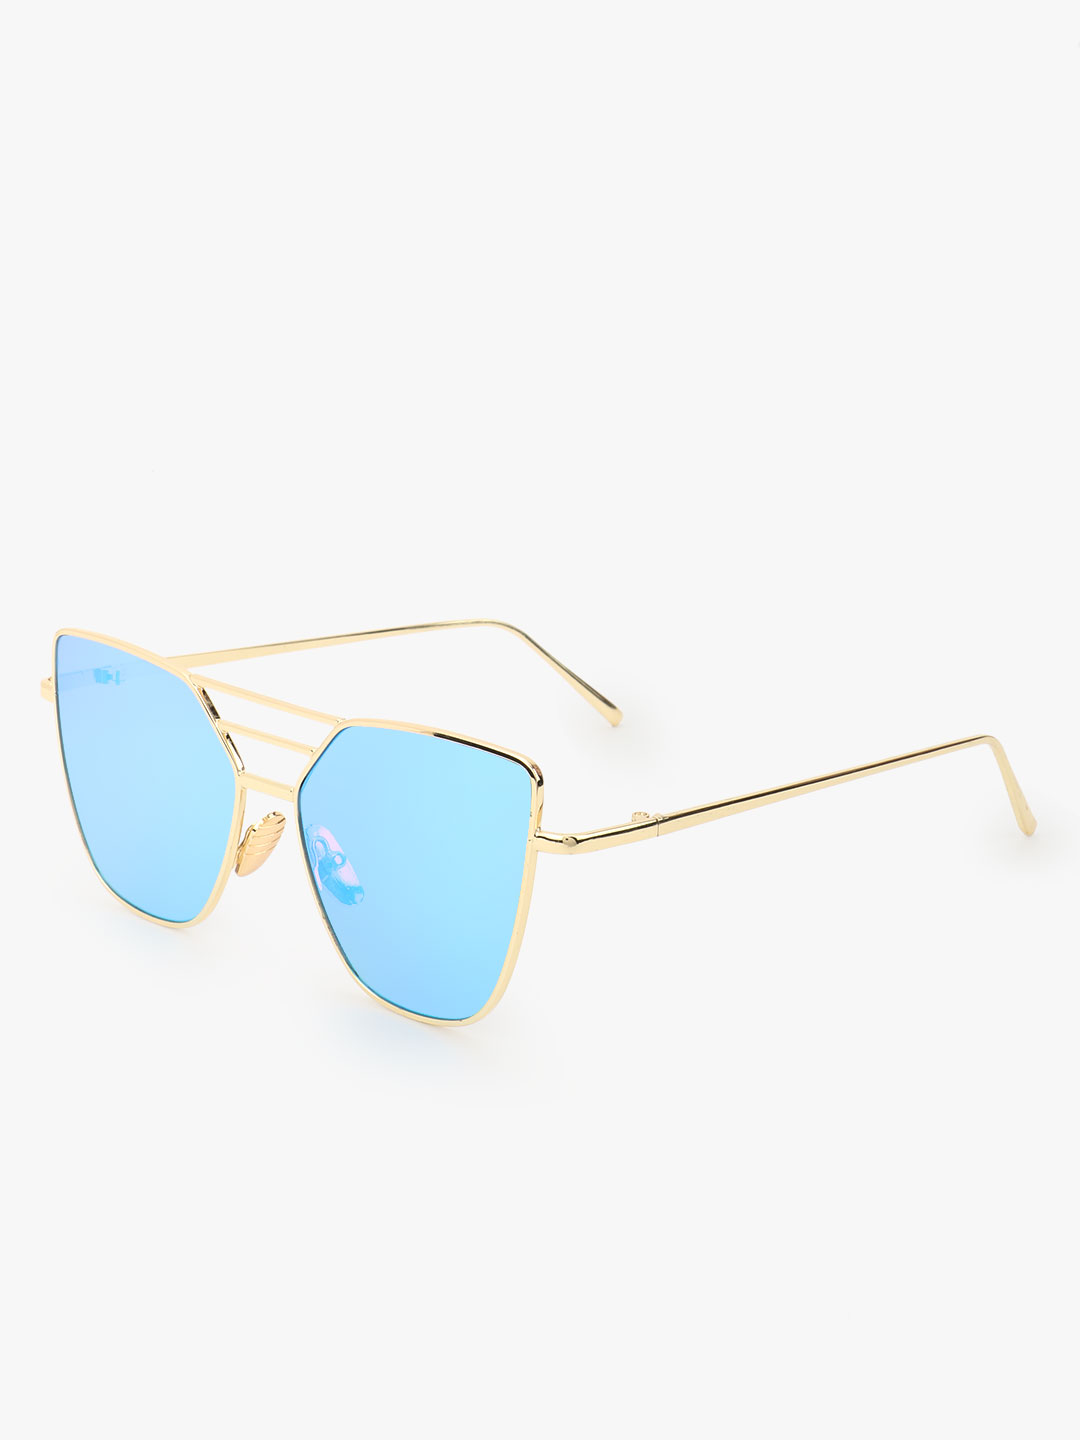 Pataaka Blue Pilot Sunglasses With Bridge Detail 1